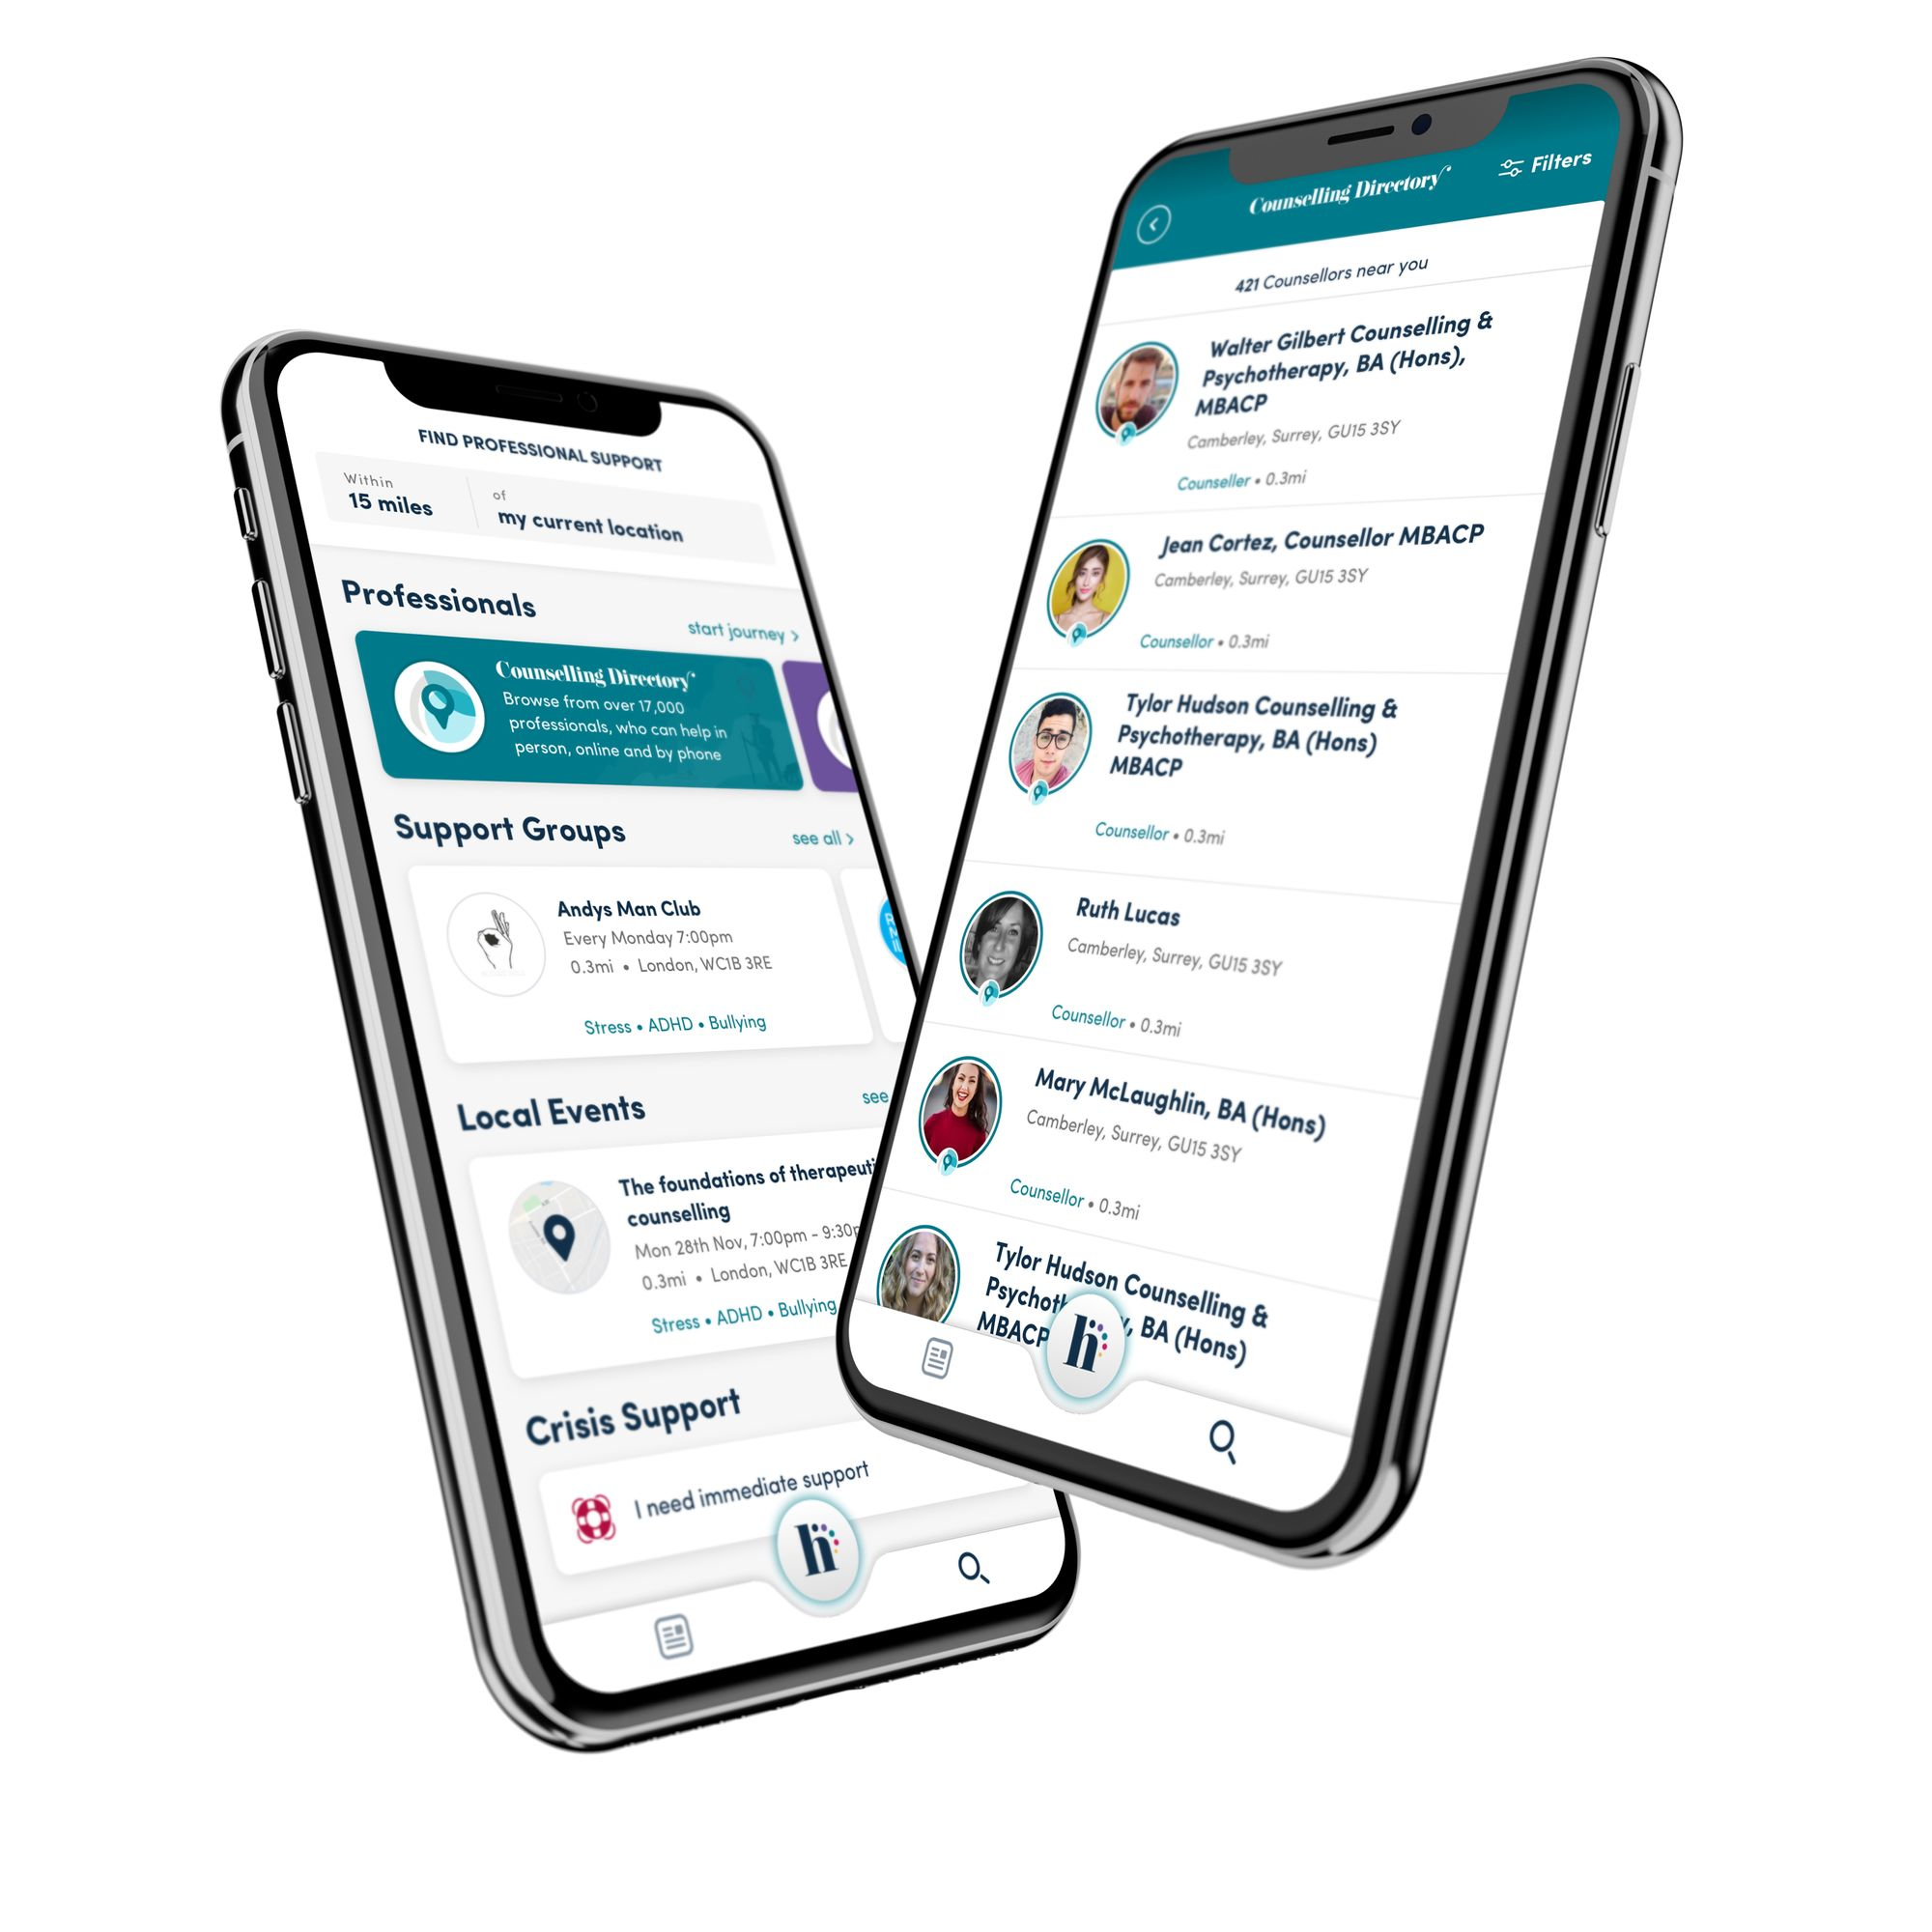 the connect screen of Happiful app shows the types of help from counselling to complementary therapies